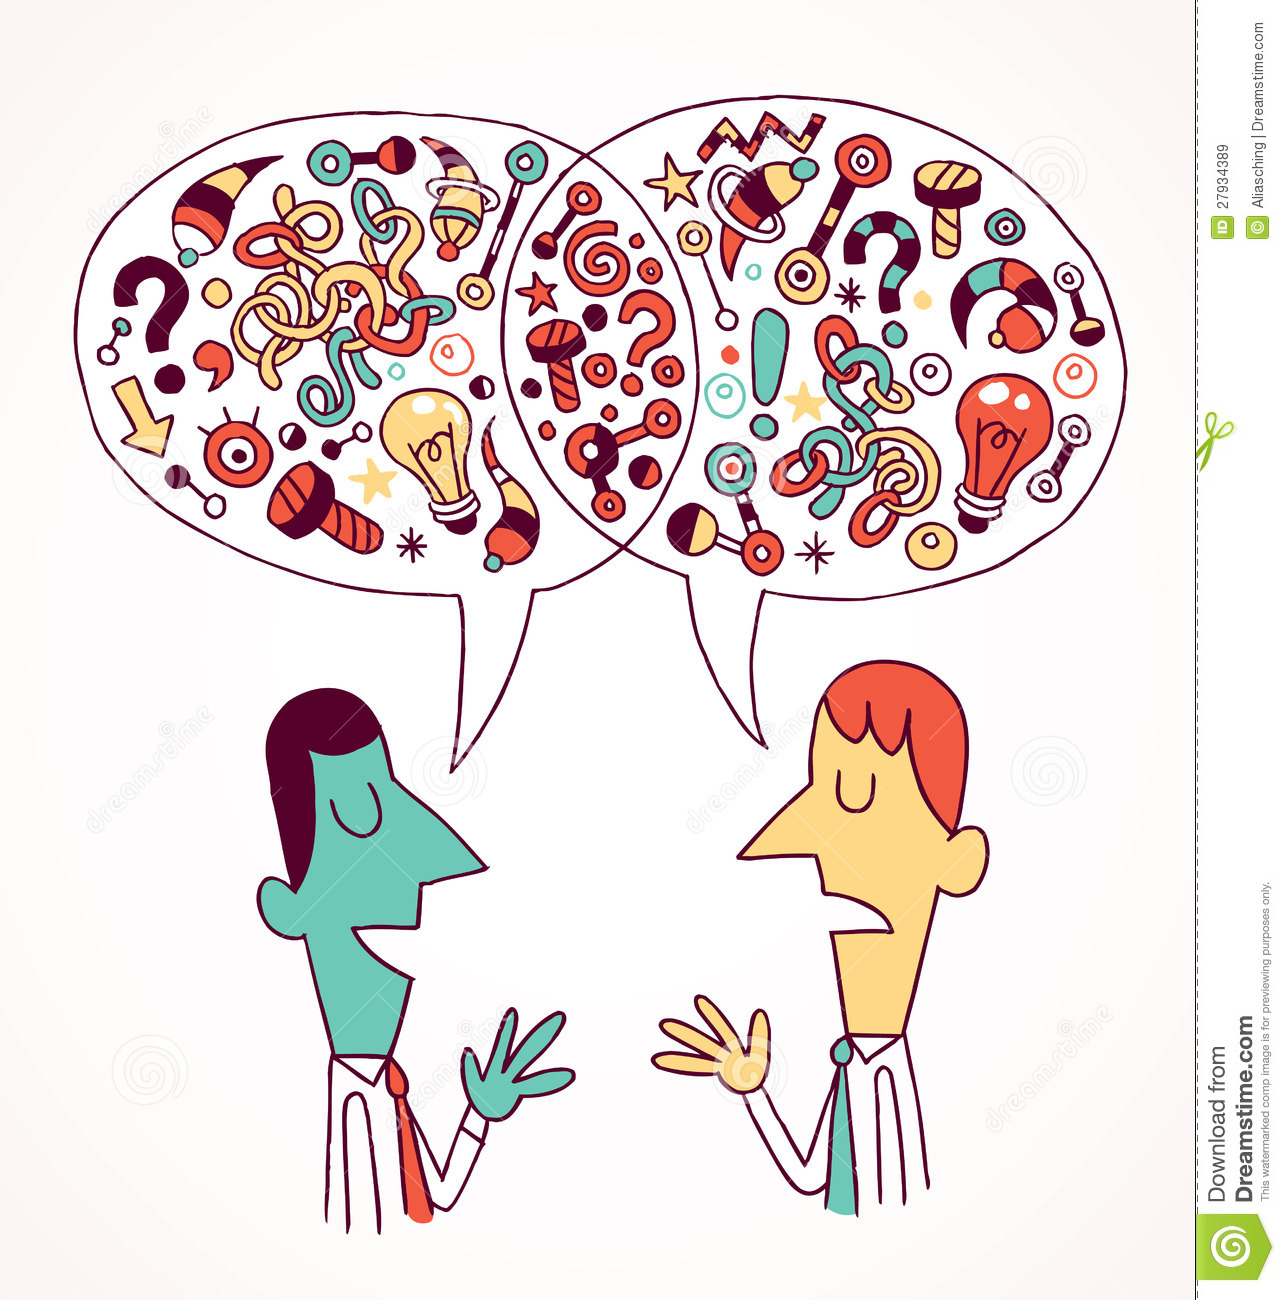 Opinions & Ideas Royalty Free Stock Images - Image: 27934389